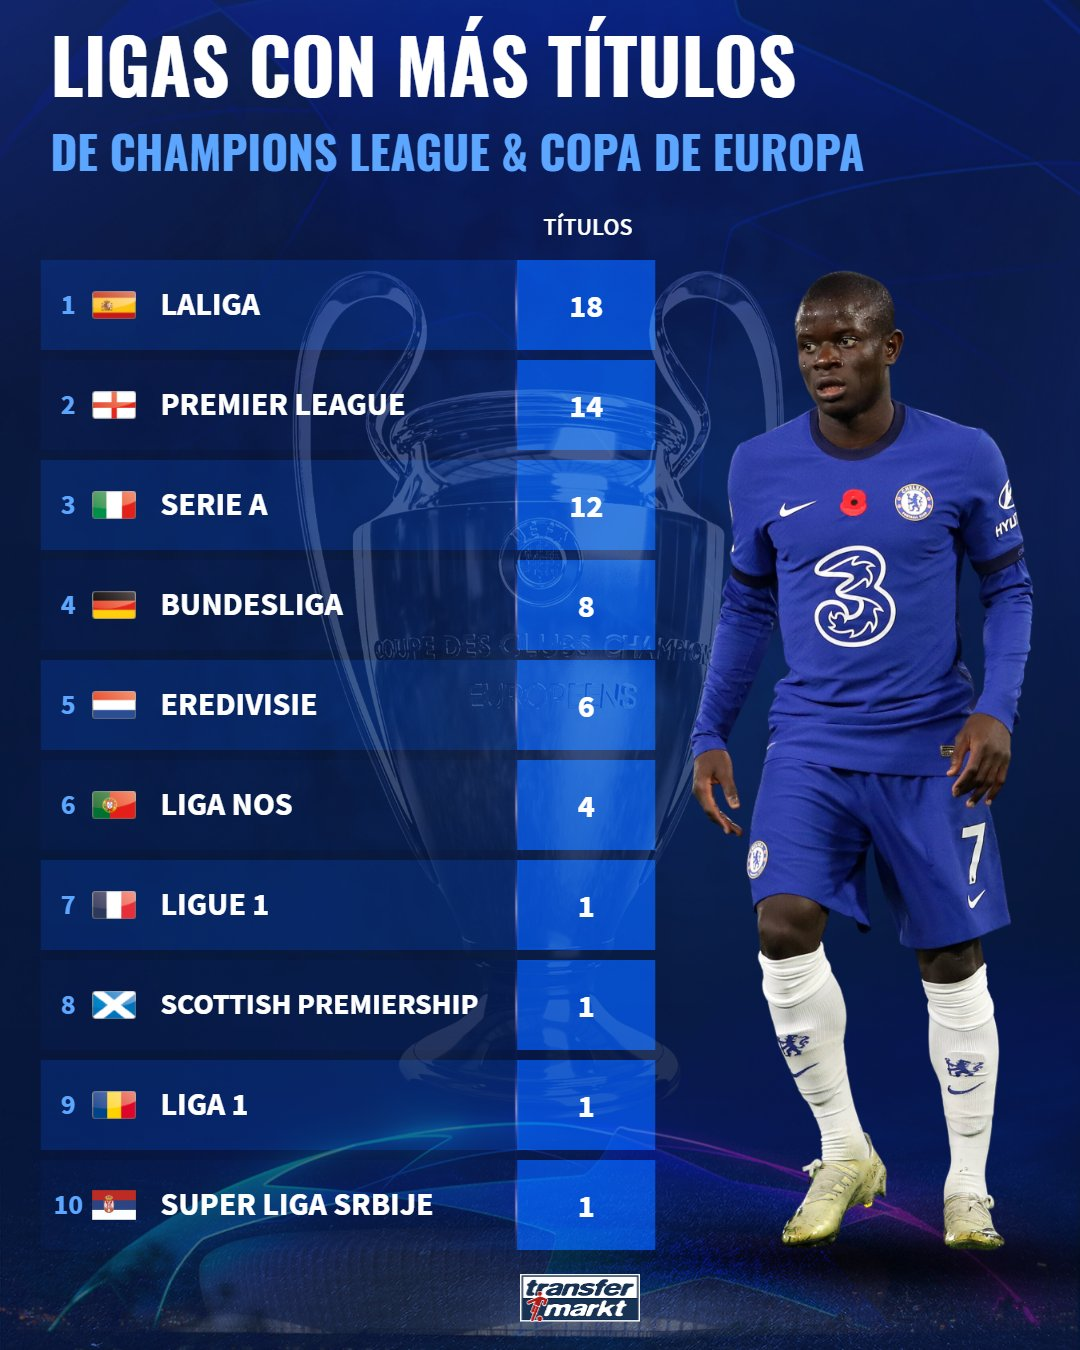 Leagues with the most trophies in the Champions League